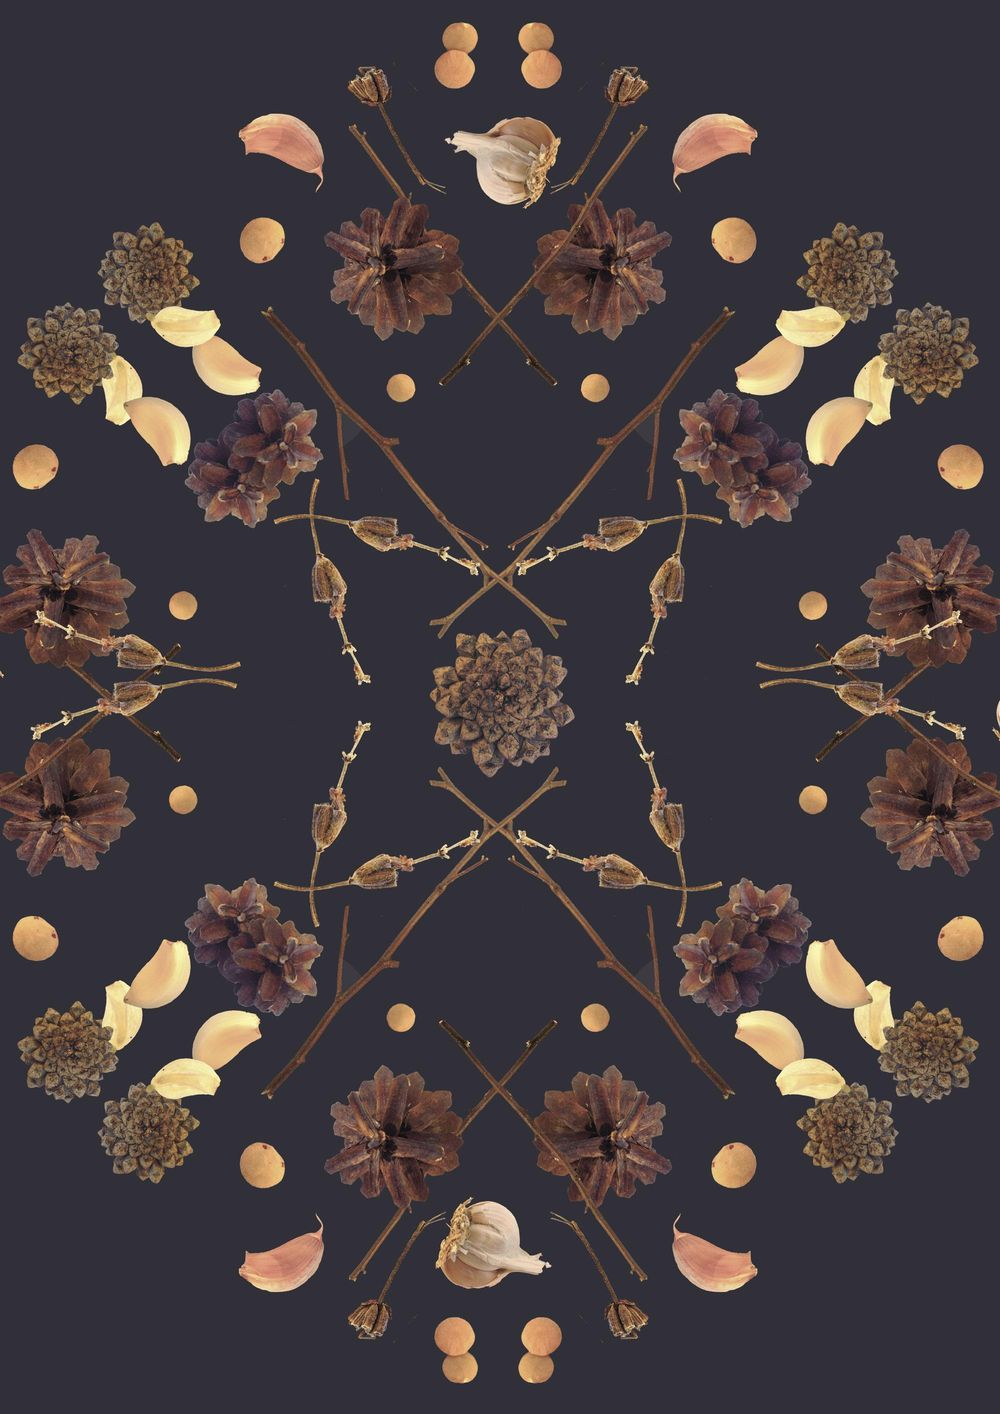 branches, garlic, cones and lentil - image 6 - student project